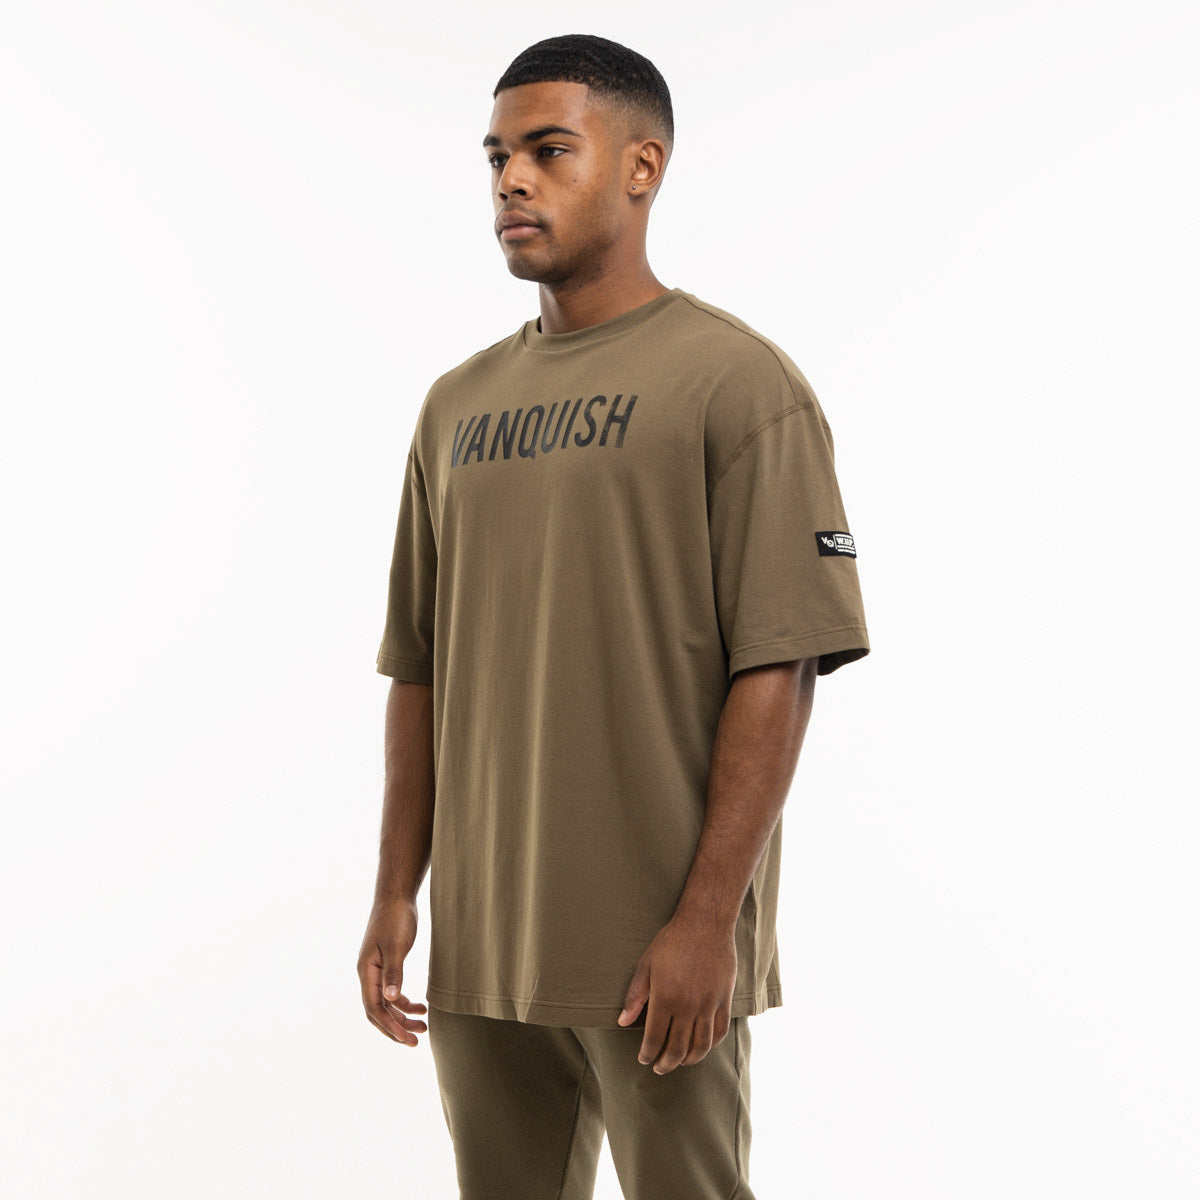 Vanquish Warm Up Project Olive Oversized Short Sleeve T Shirt